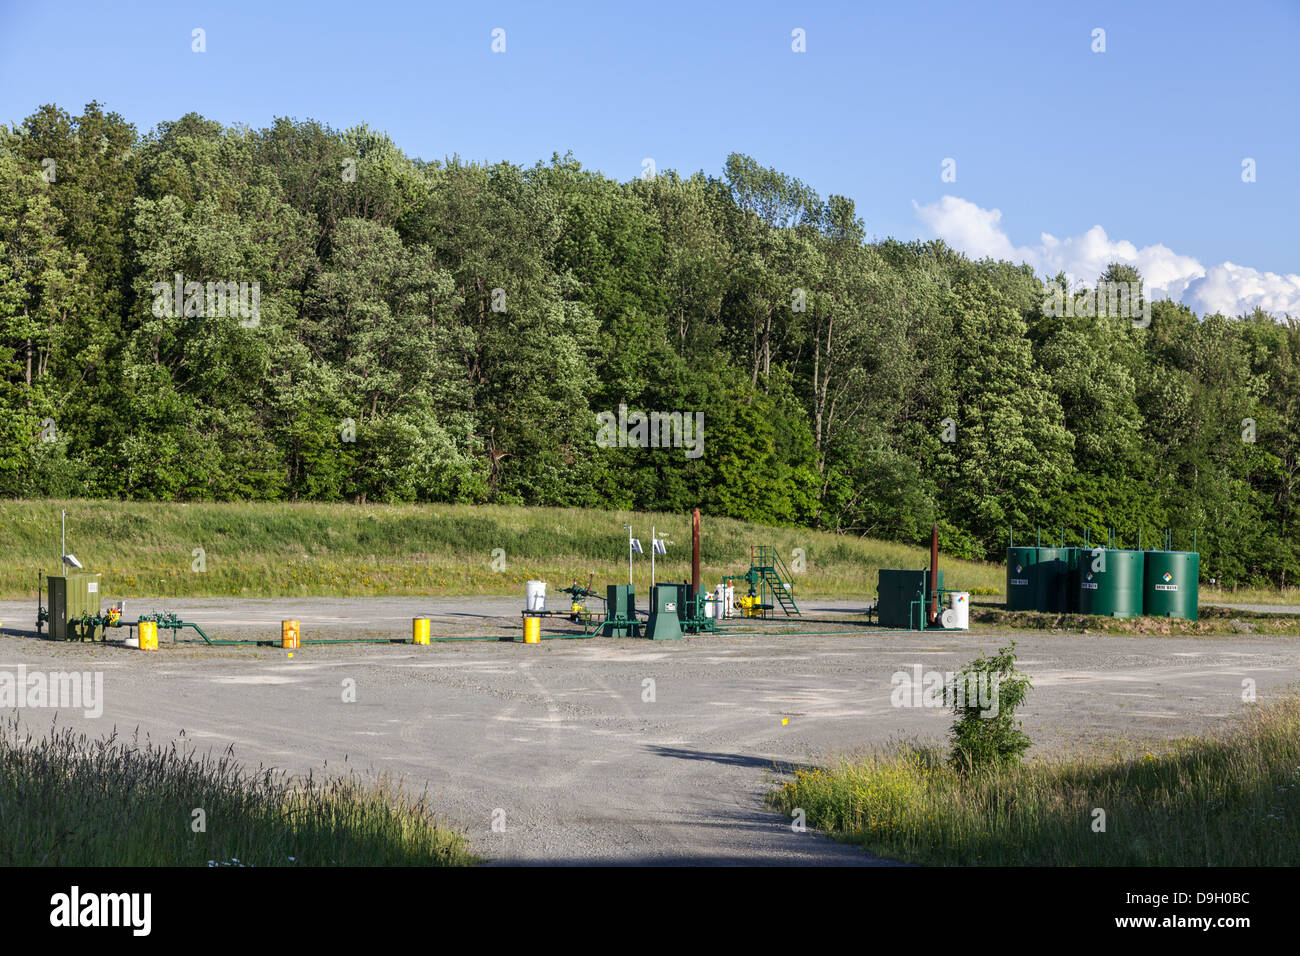 Dimock, Pennsylvania: a fracking site after drilling is completed includes tanks to hold brine water. - Stock Image